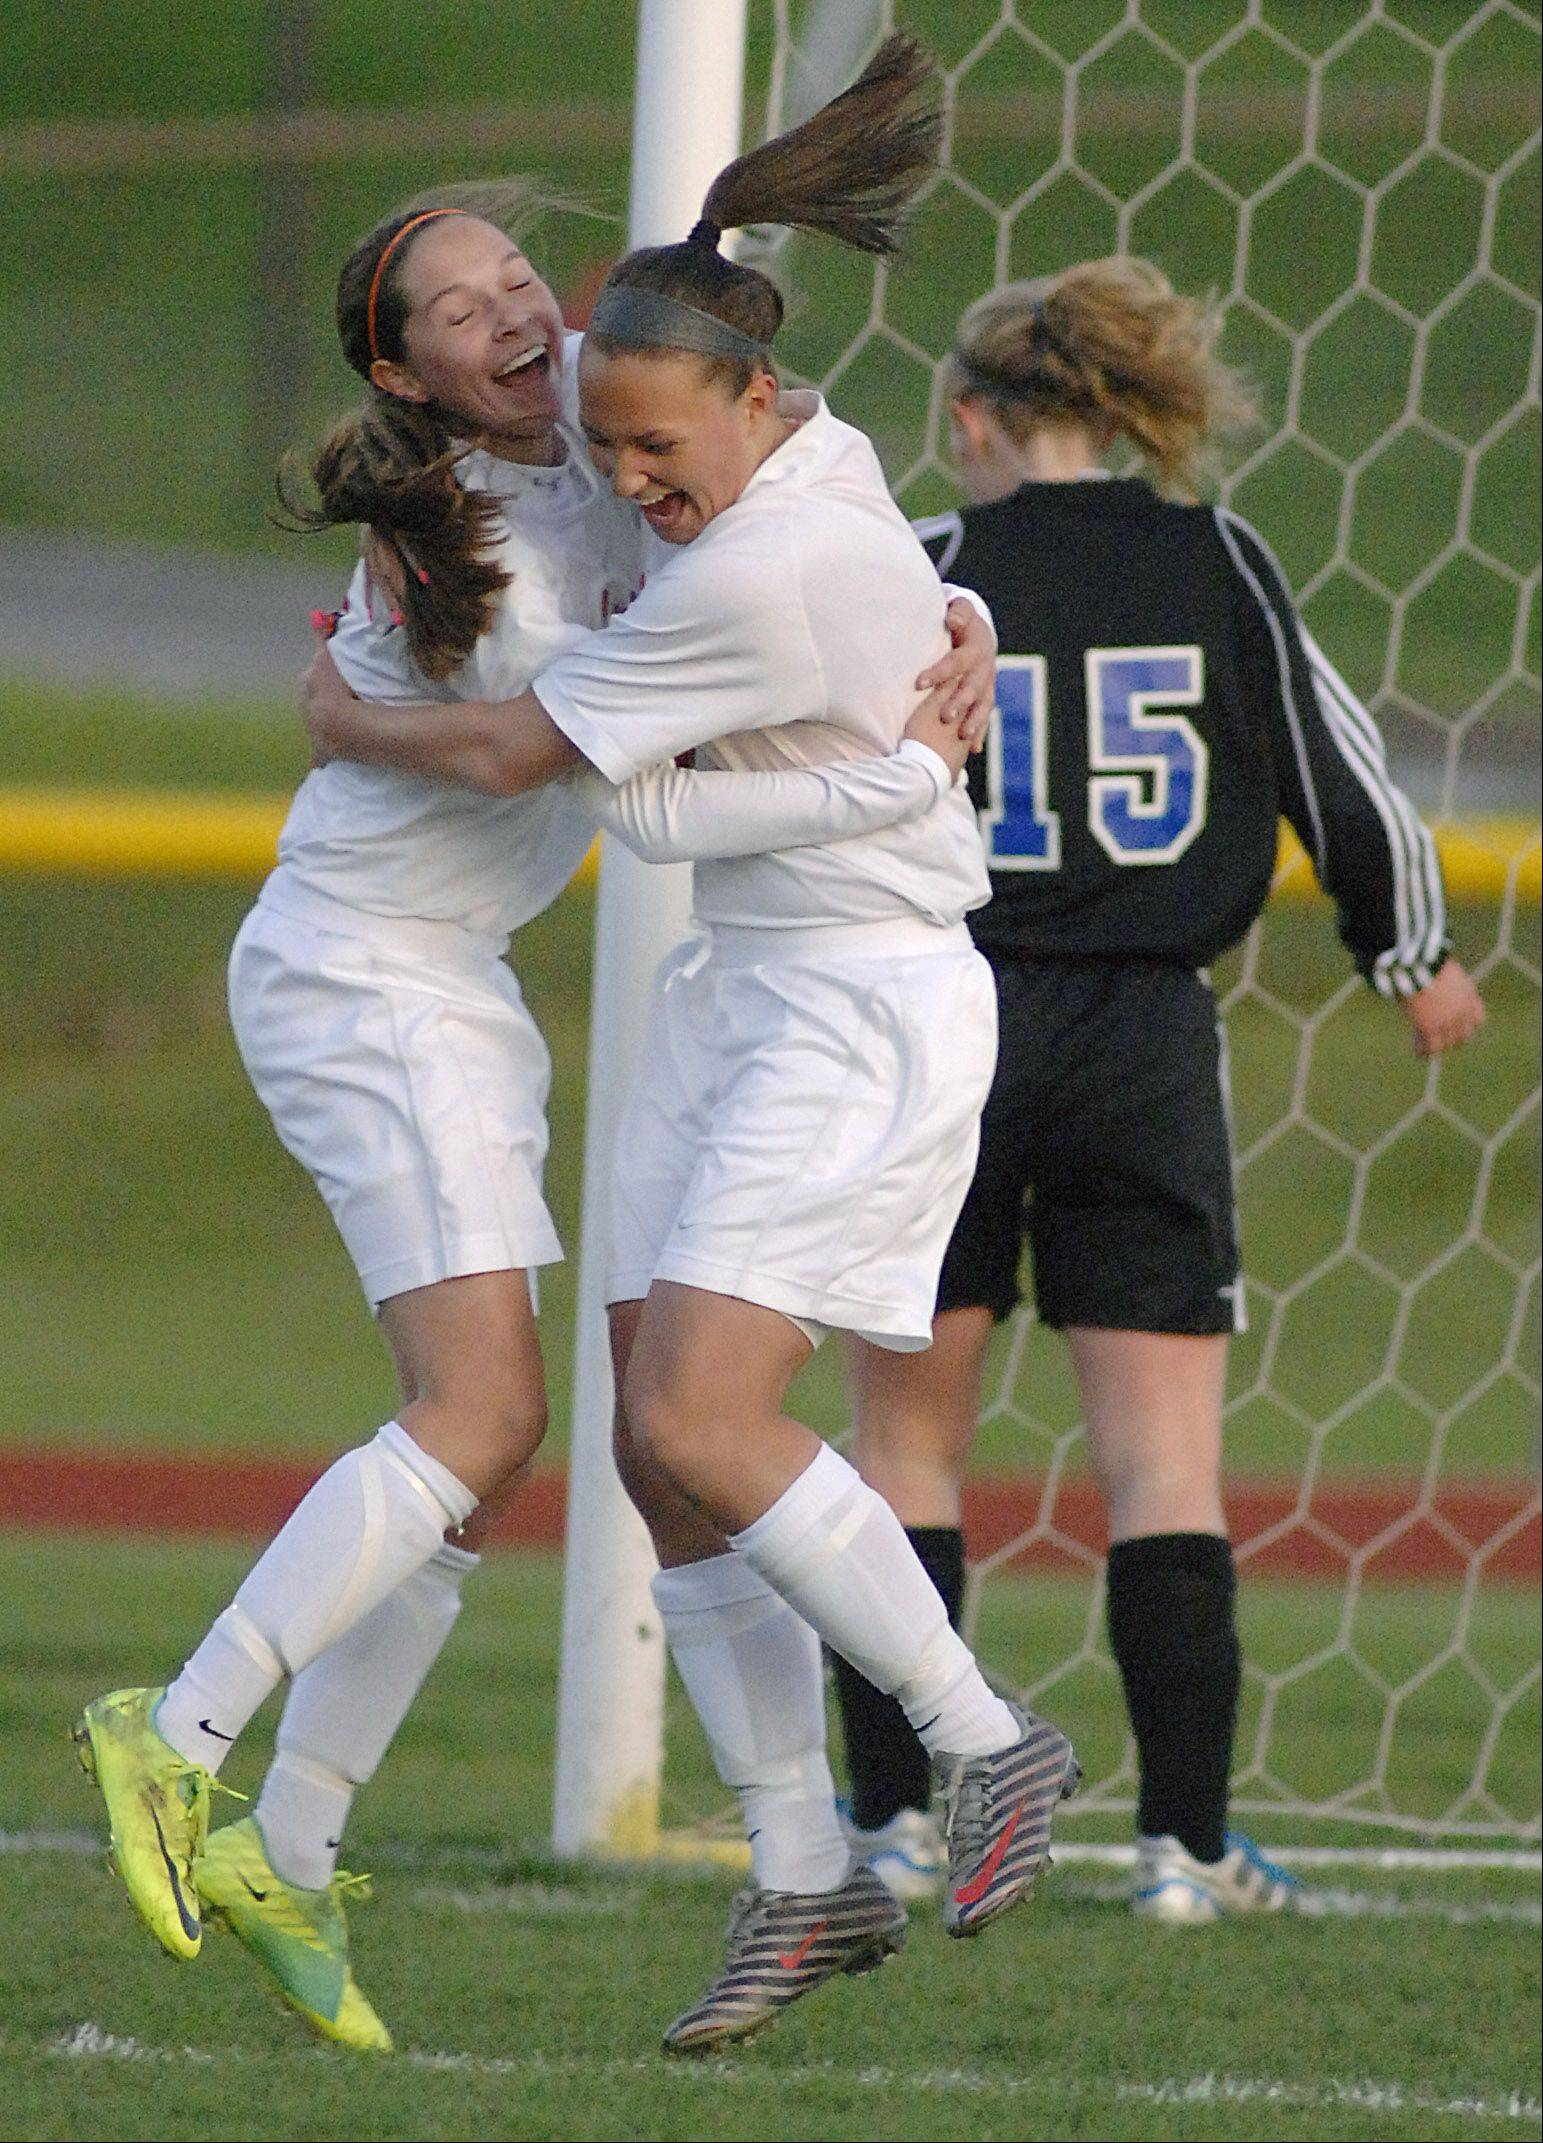 St. Charles East's Darcy Cunningham, left, celebrates her goal with teammate Carly Pottle Wednesday.